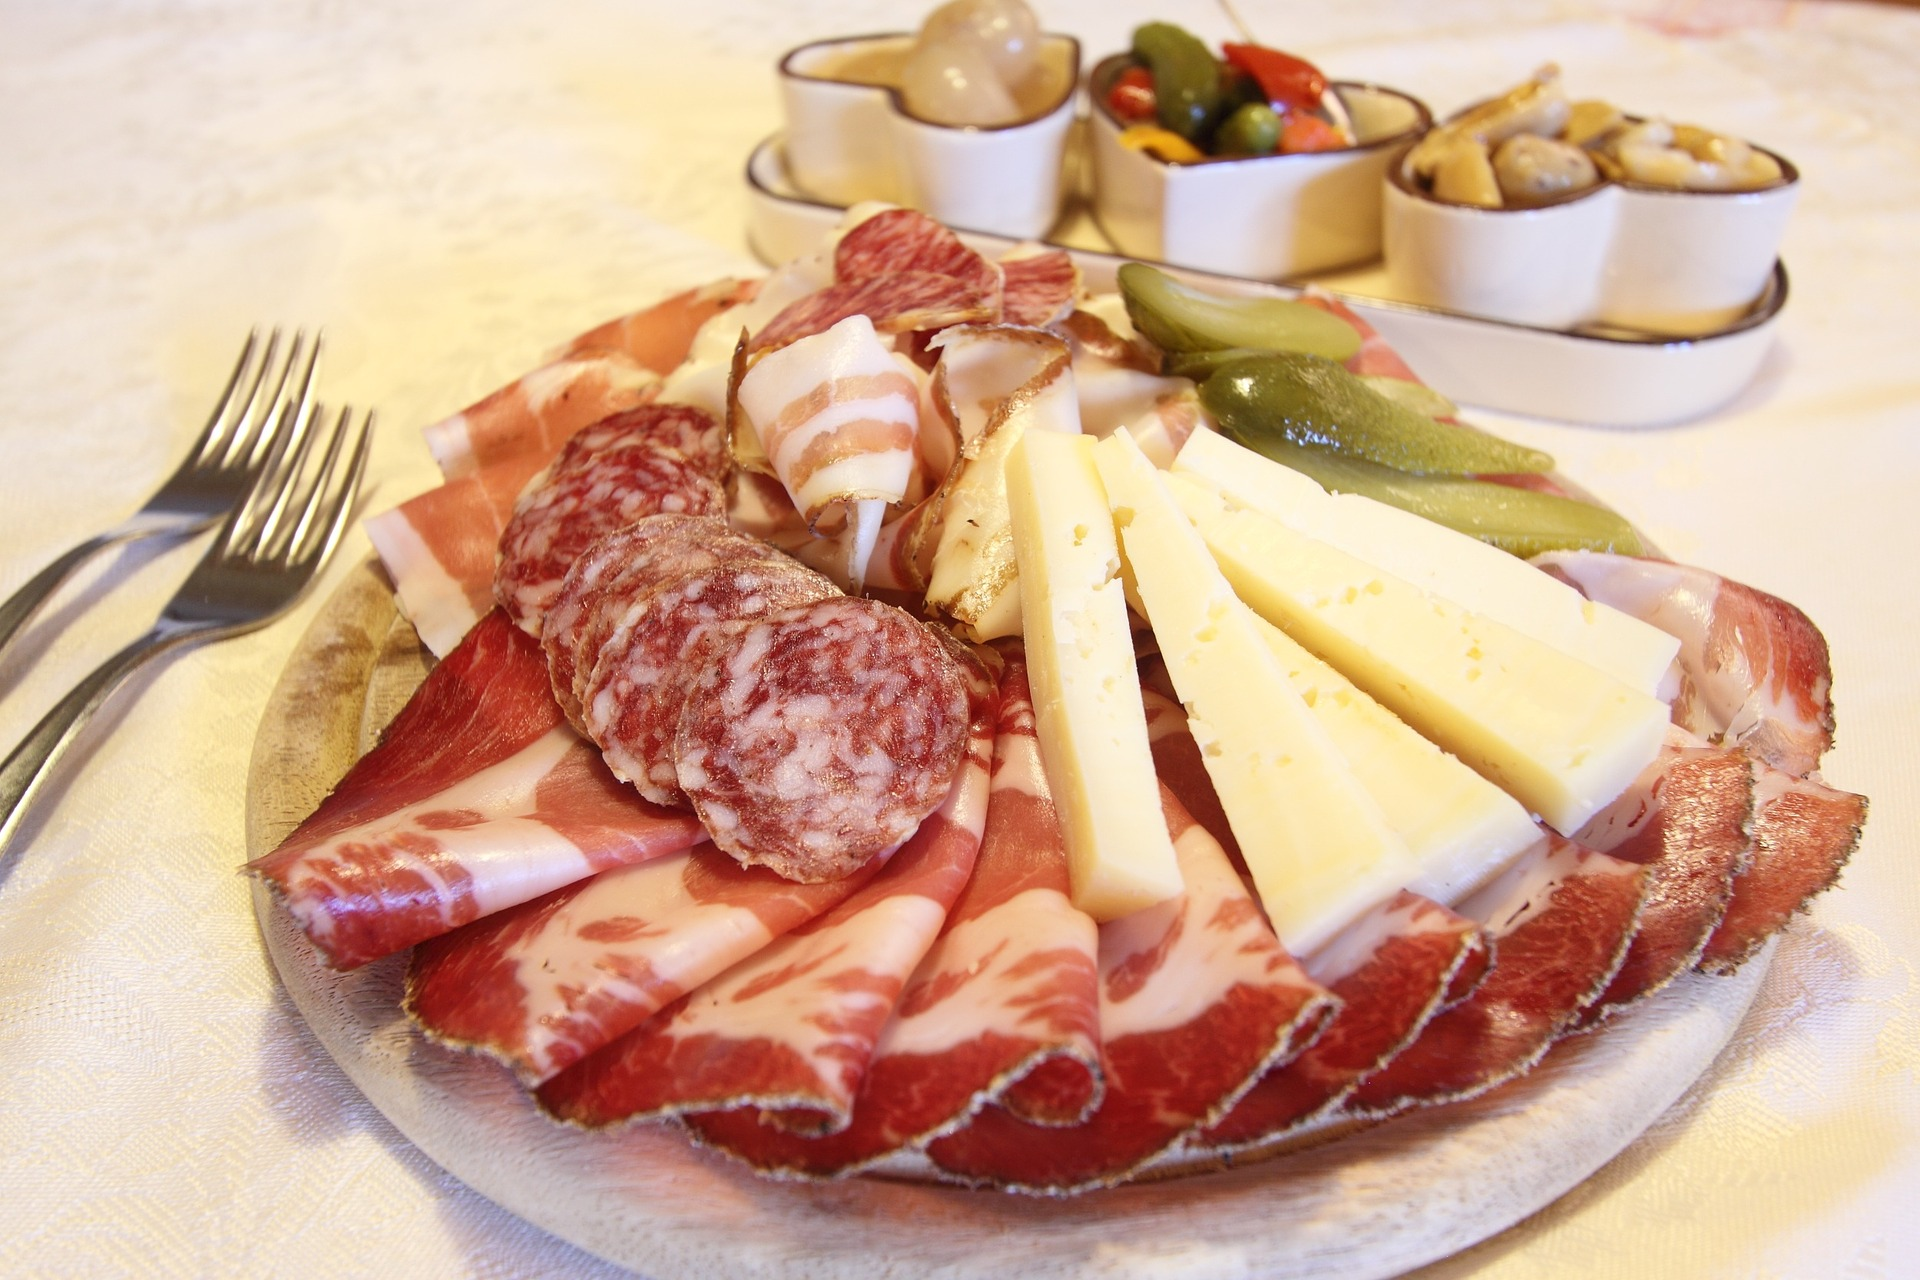 charcuterie plate - wedding reception appetizers